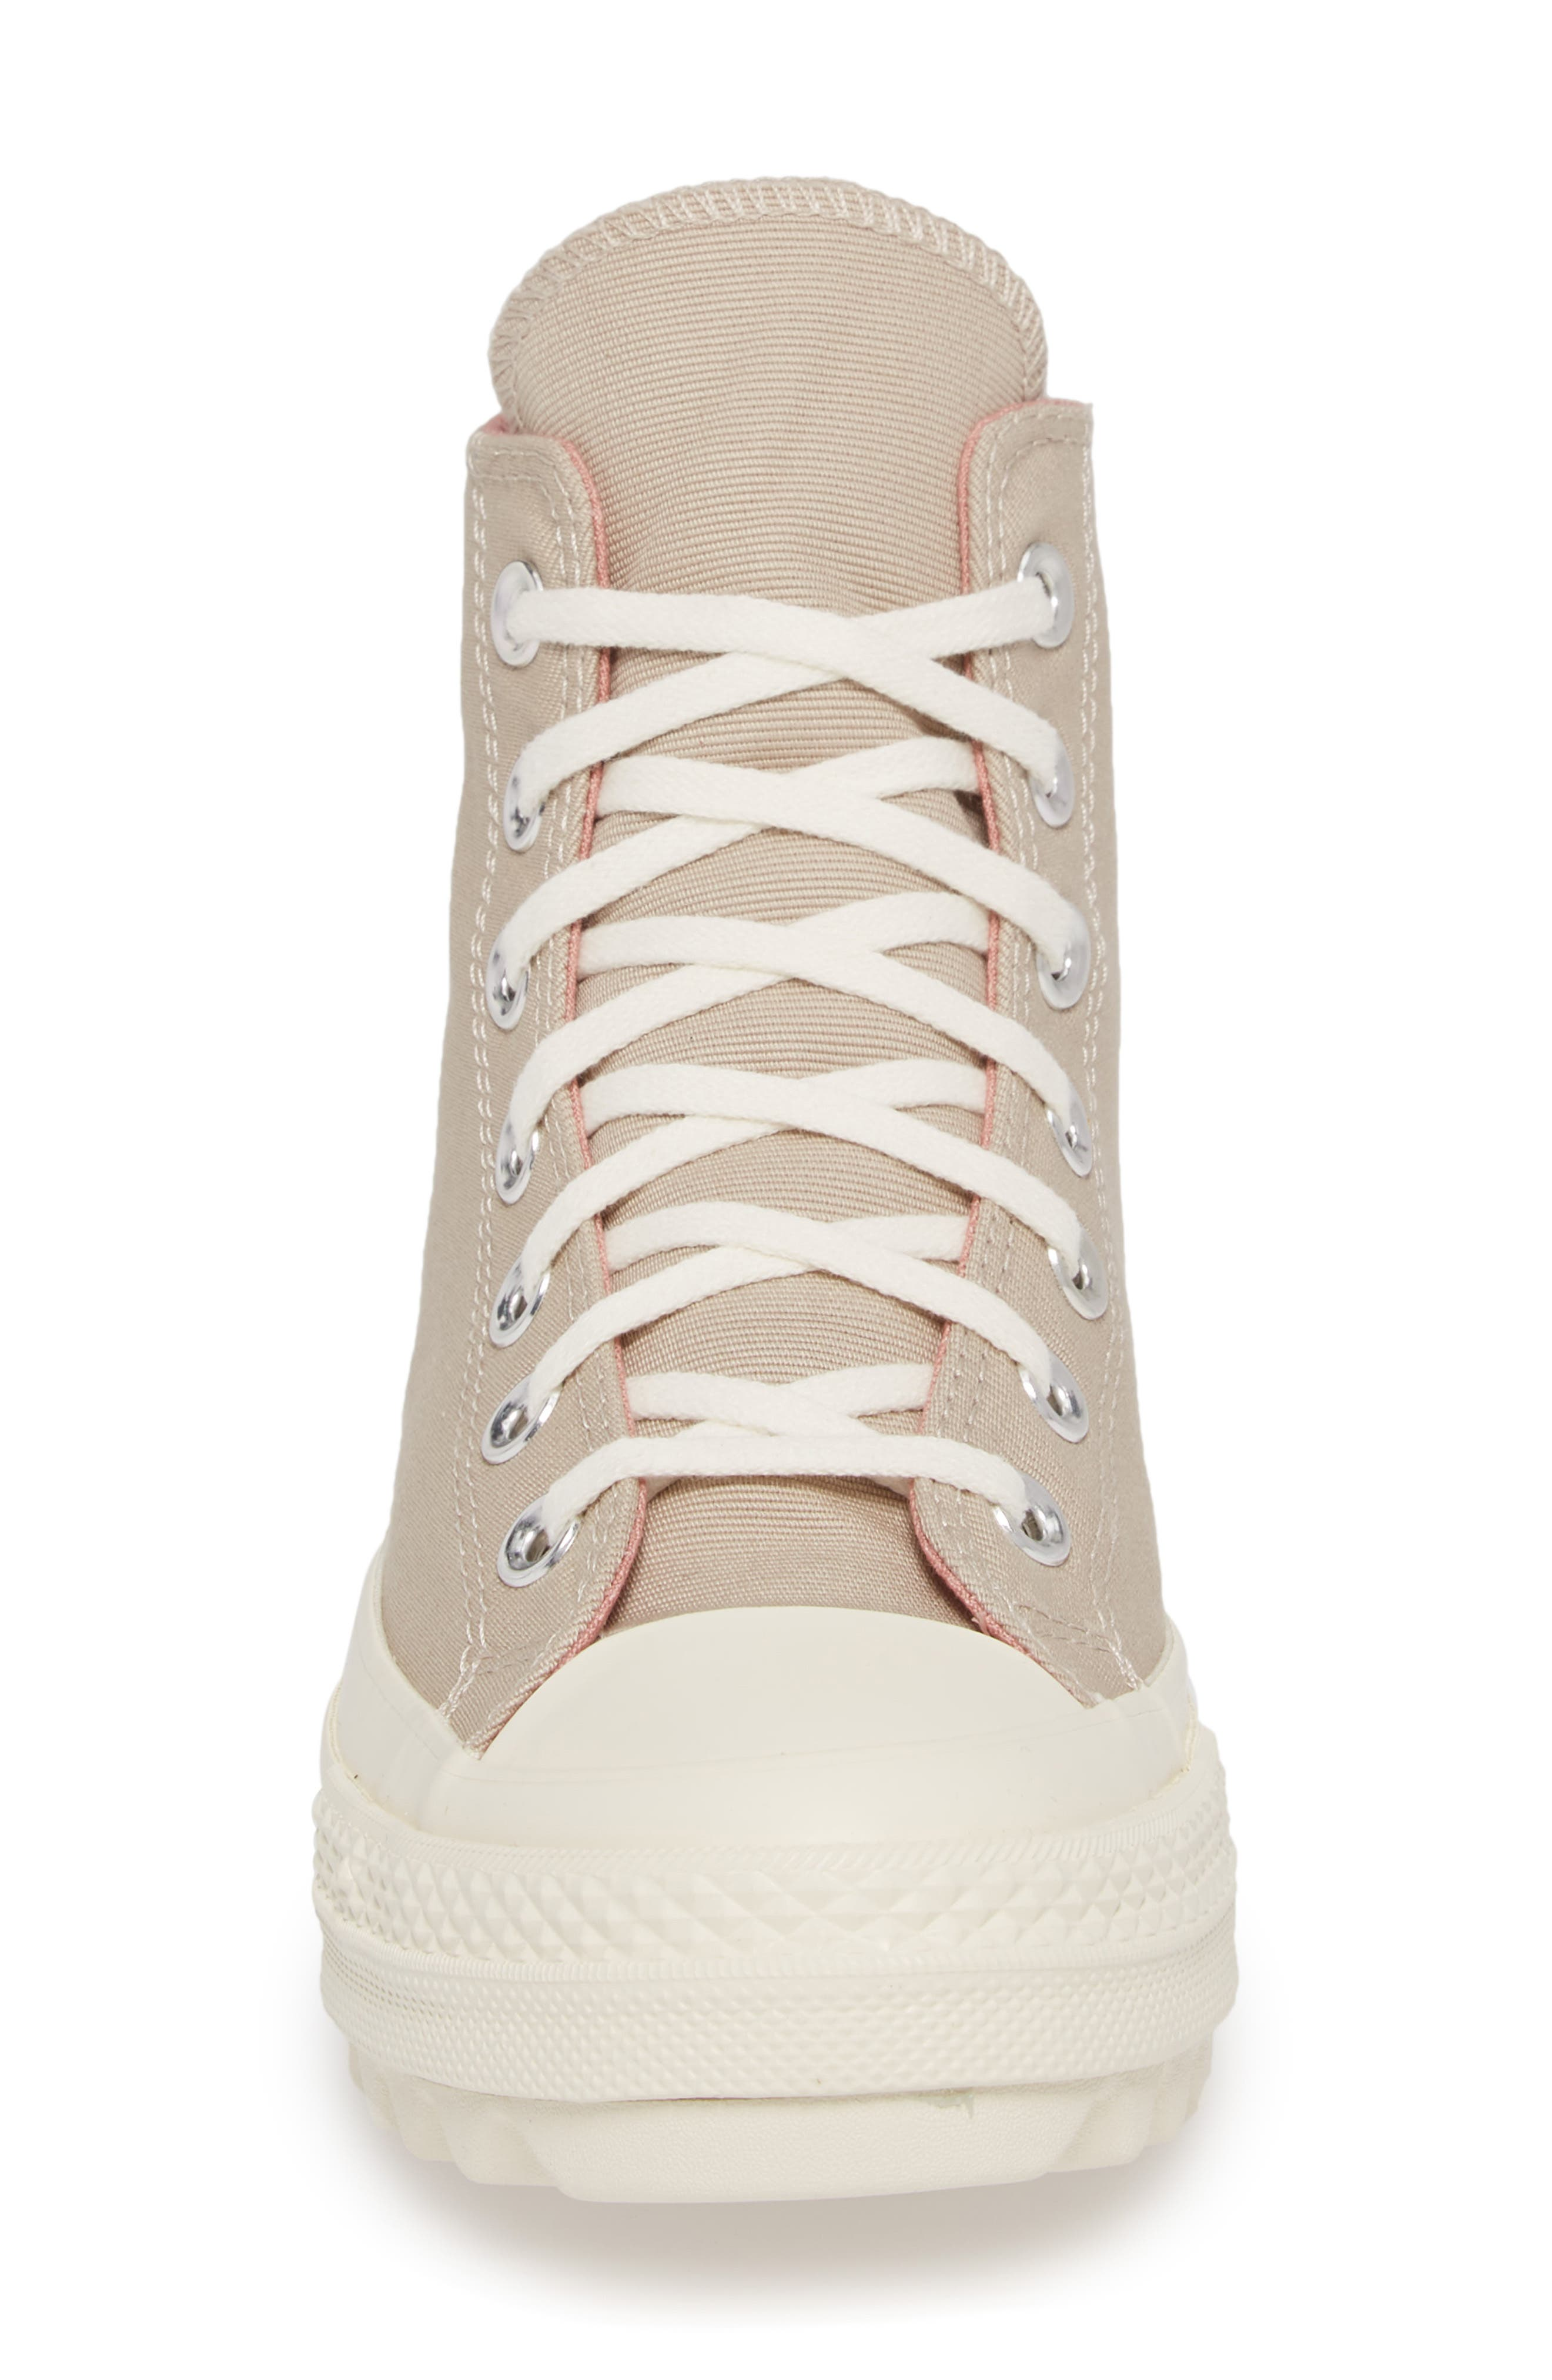 Chuck Taylor<sup>®</sup> All Star<sup>®</sup> Ripple High Top Sneaker,                             Alternate thumbnail 5, color,                             Papyrus Suede